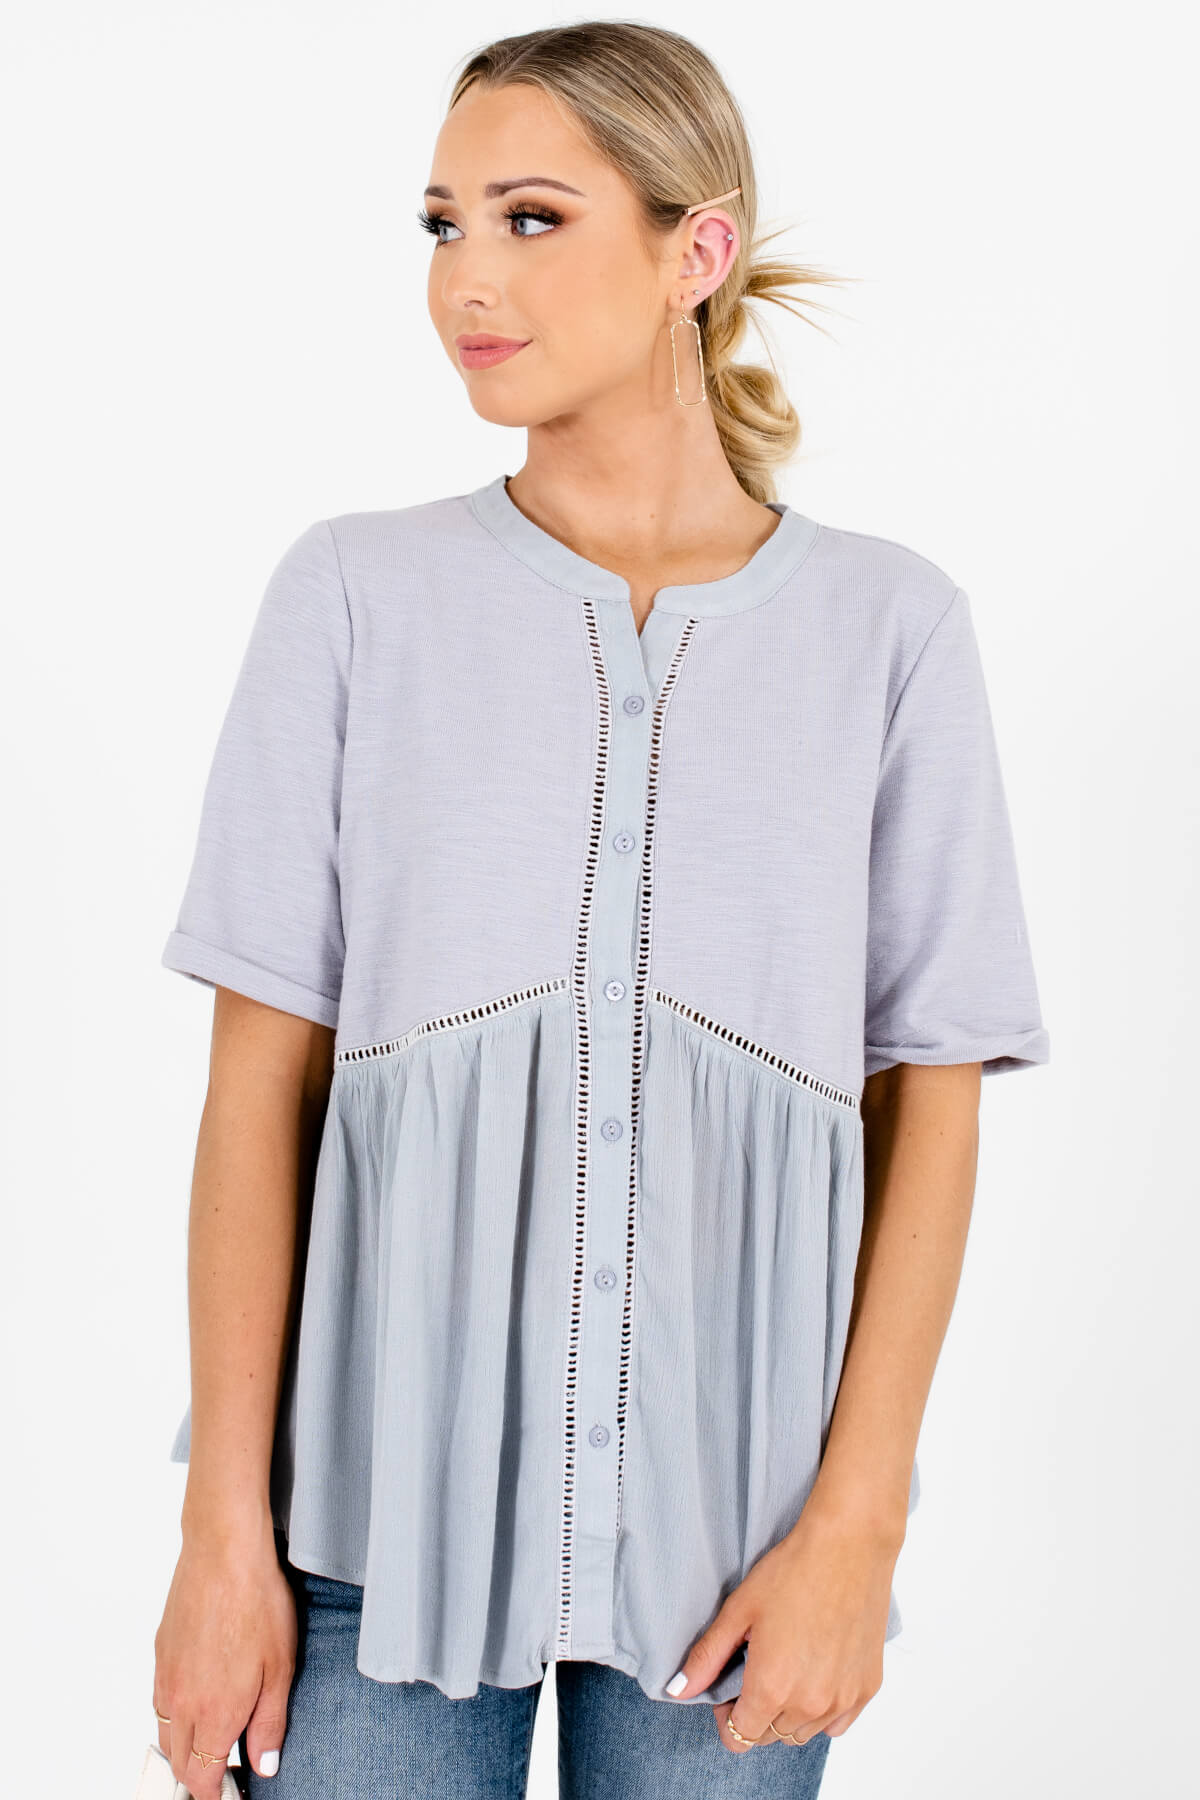 Blue Gray Cute Button-Up Tops Affordable Online Boutique